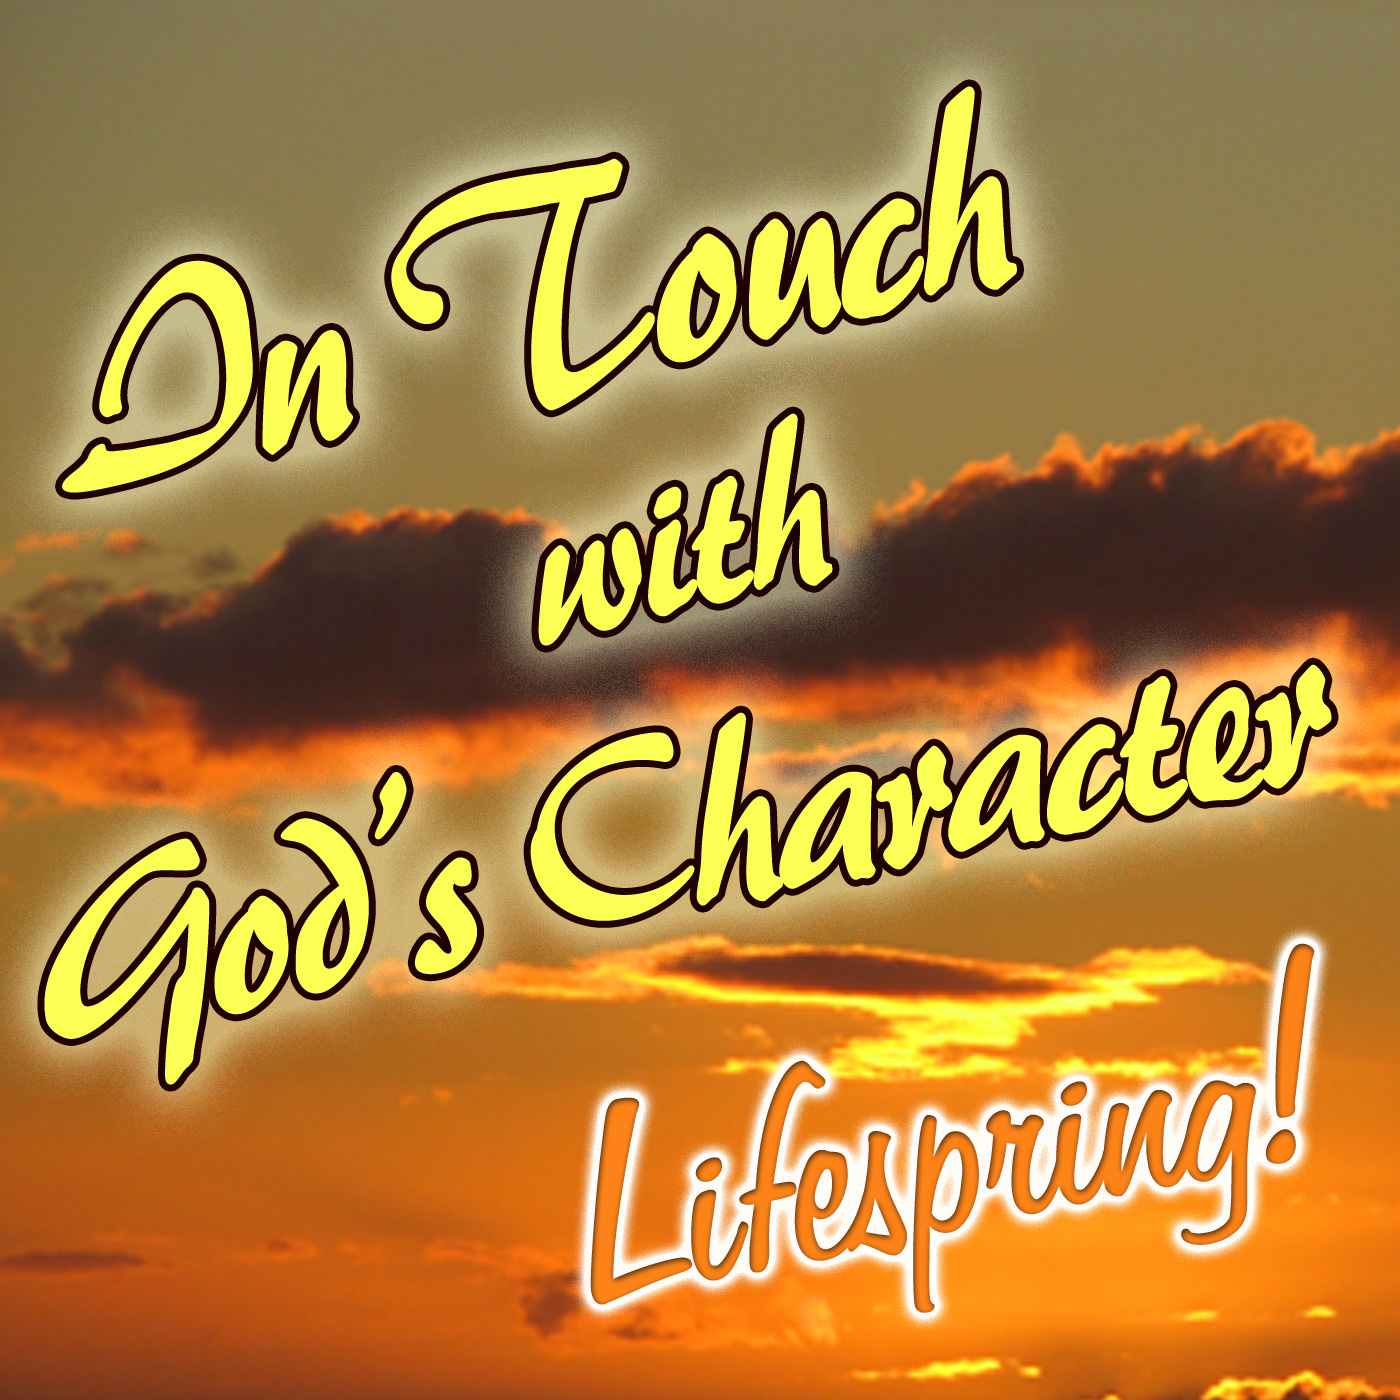 Lifespring!s In Touch With God's Character